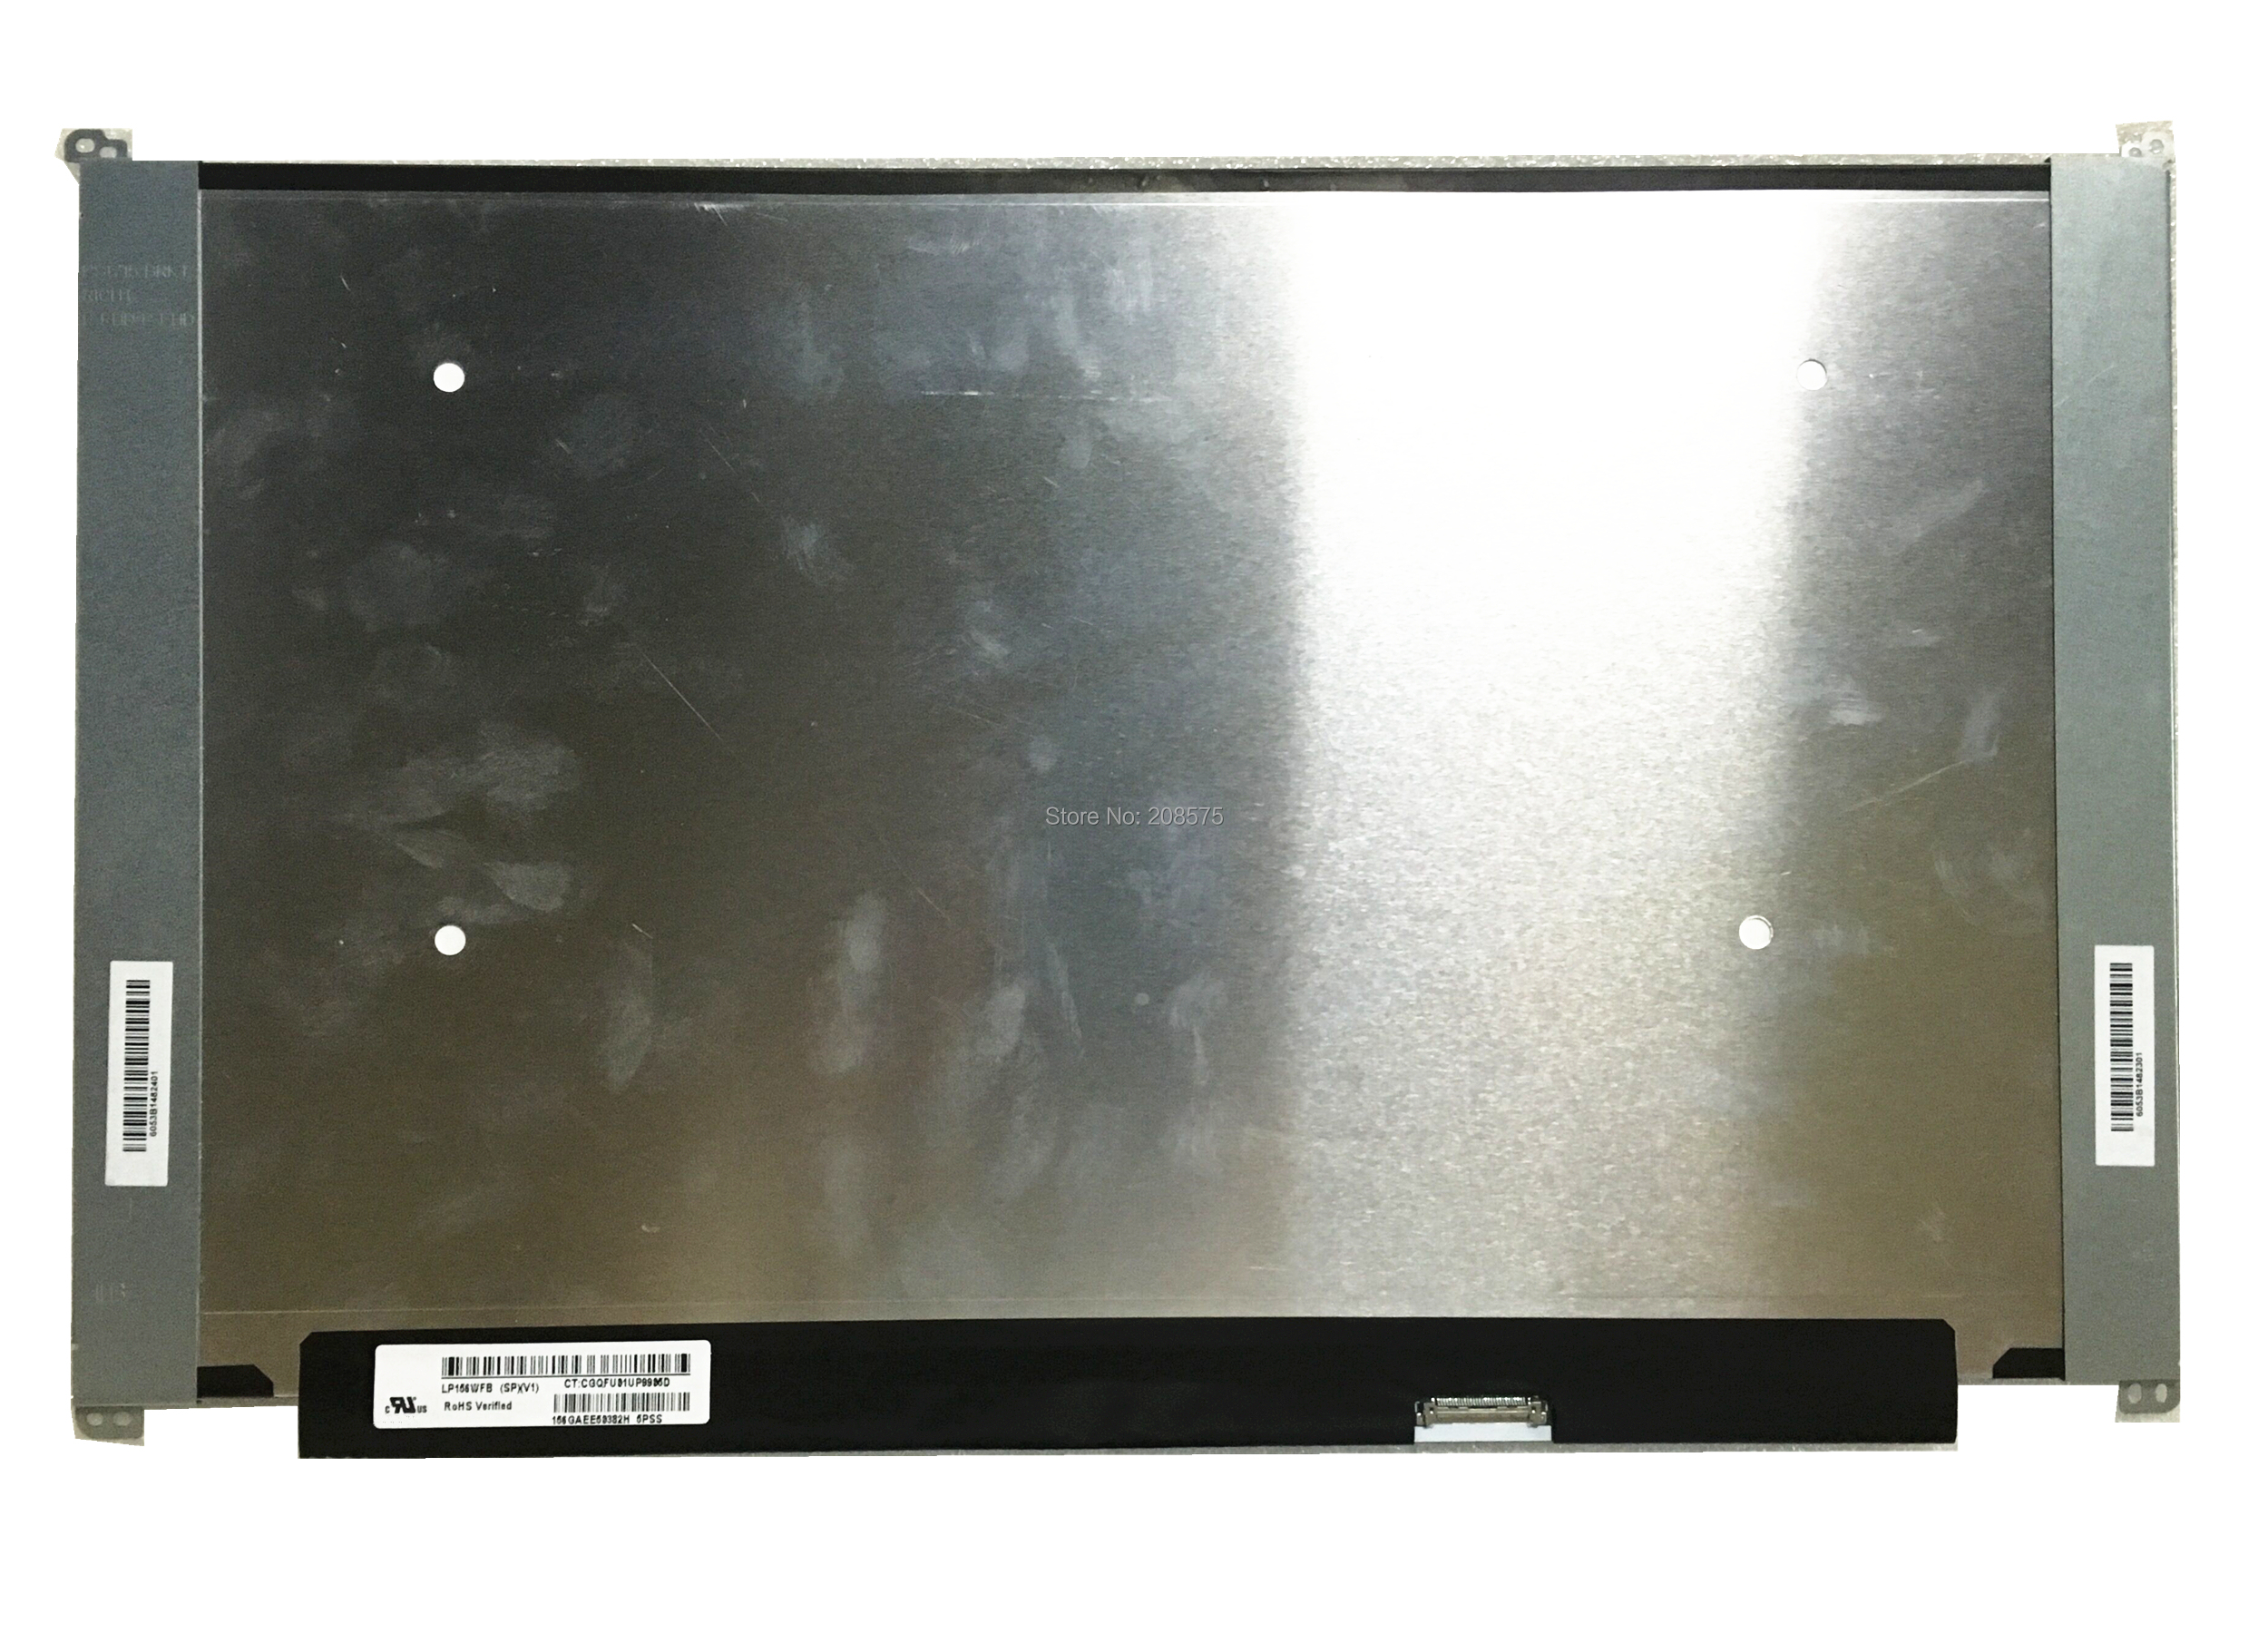 Free shipping!  LP156WFB-SPV1 LP156WFB SPV1 15.6inch Laptop Lcd Screen 1920*1080 EDP 30 pins LED Display Laptop ScreenFree shipping!  LP156WFB-SPV1 LP156WFB SPV1 15.6inch Laptop Lcd Screen 1920*1080 EDP 30 pins LED Display Laptop Screen